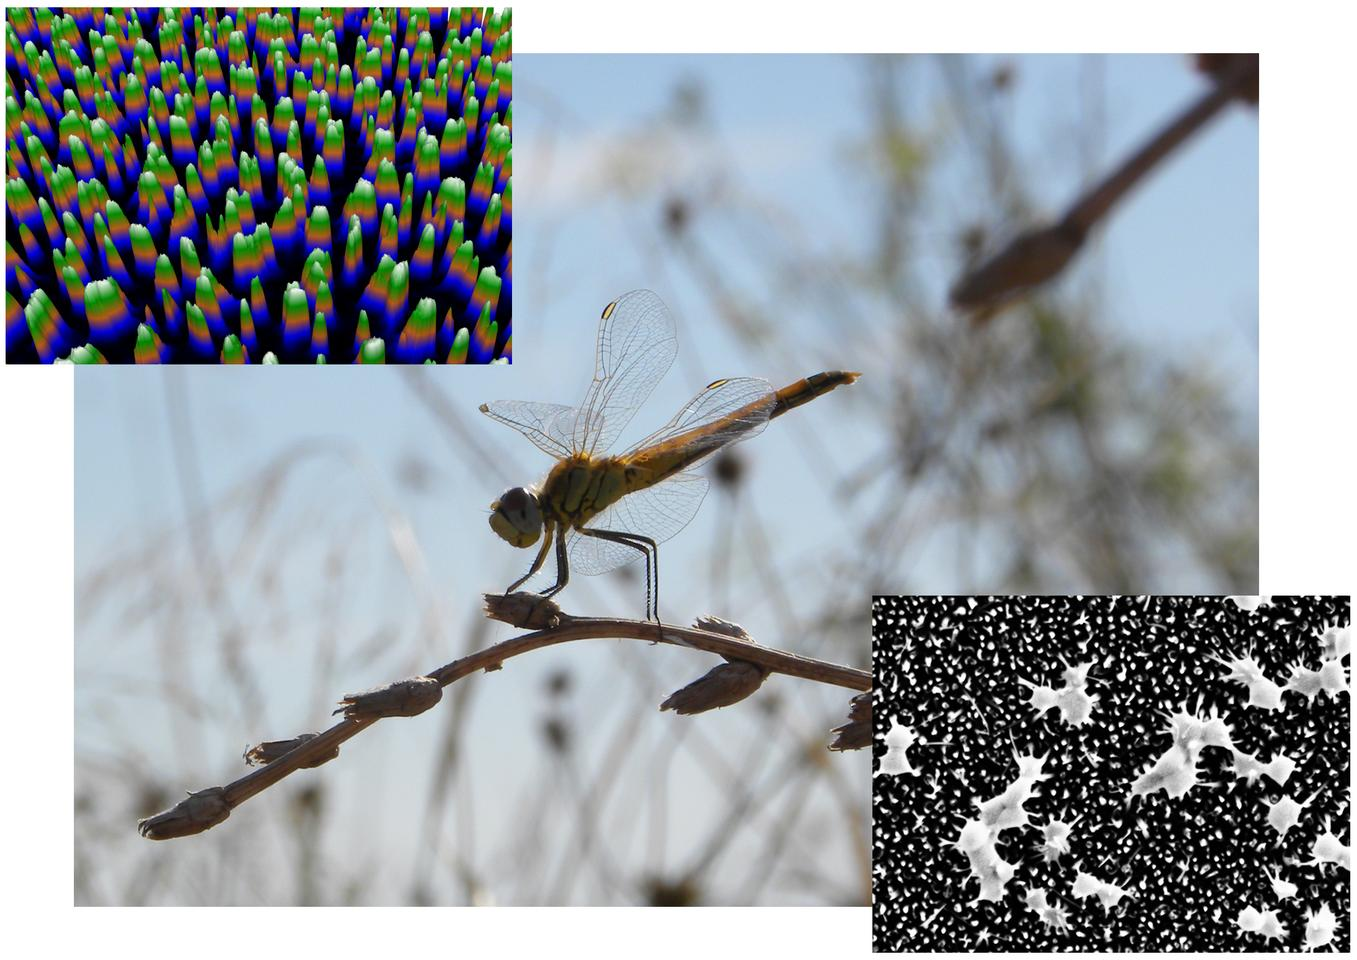 The surface structure of black silicon is similar to the surface of the wings of the Wandering Dragonfly